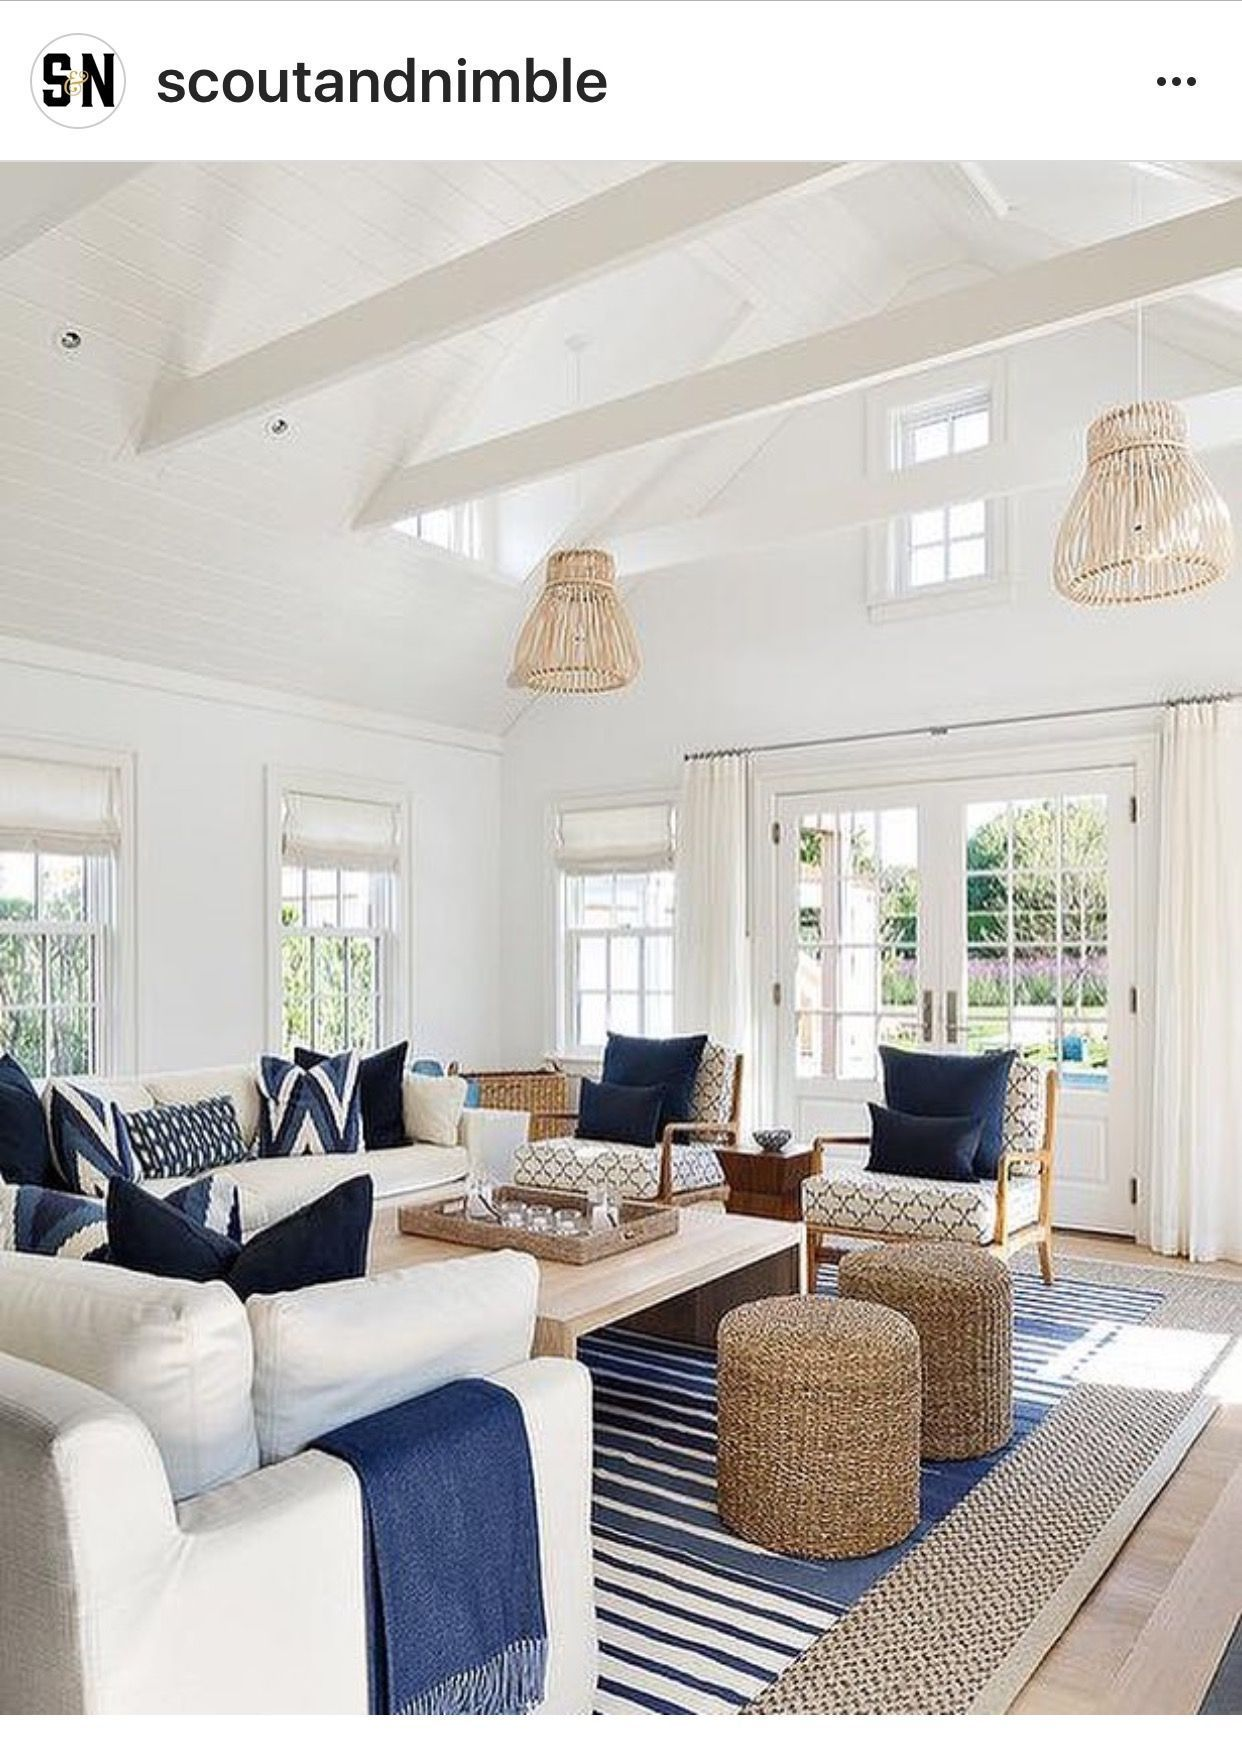 Light And Bright Coastal Interior With A Relaxed Feel | Coastal Home Décor  | Coastal Interiors | Nautical Interiors | Nautical Home Décor | Beach Hu2026